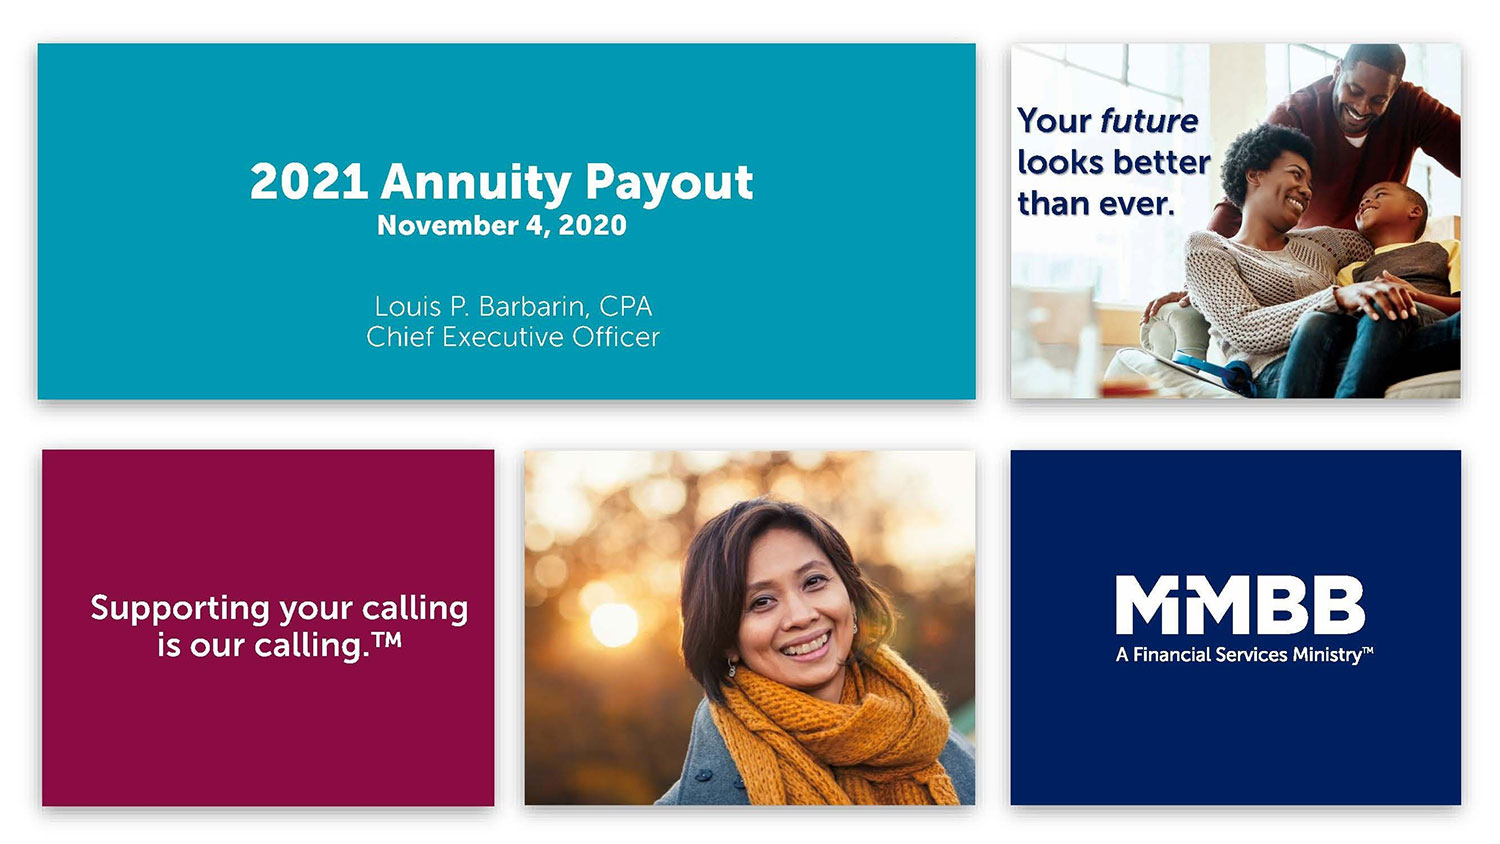 2021 Annuity Payout Report Webinar